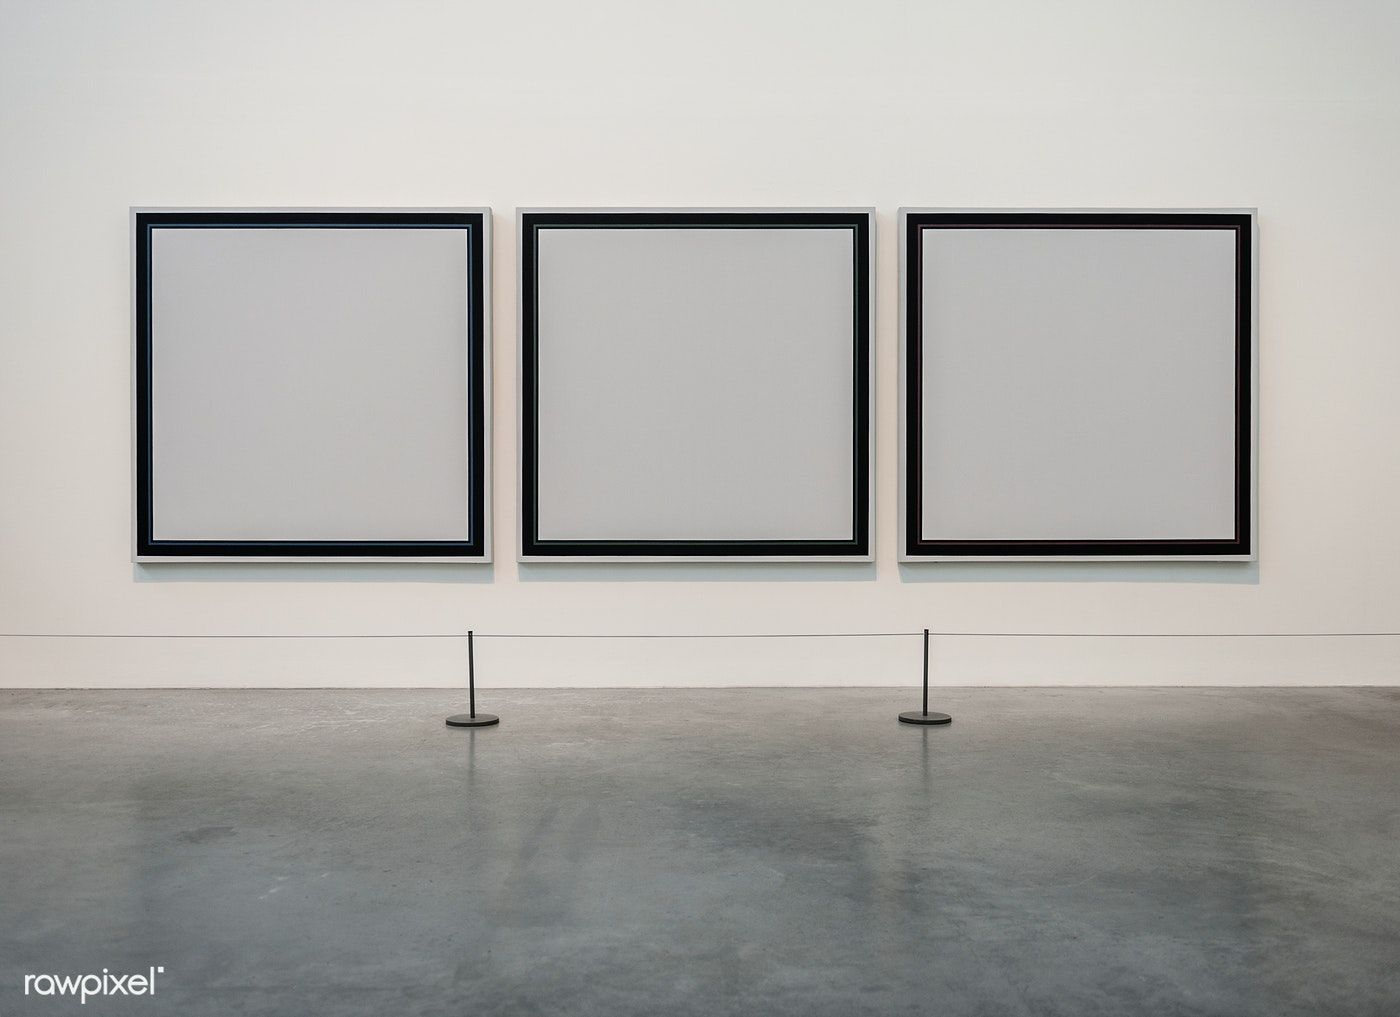 Empty Frames At A Gallery Free Image By Rawpixel Com ในป 2020